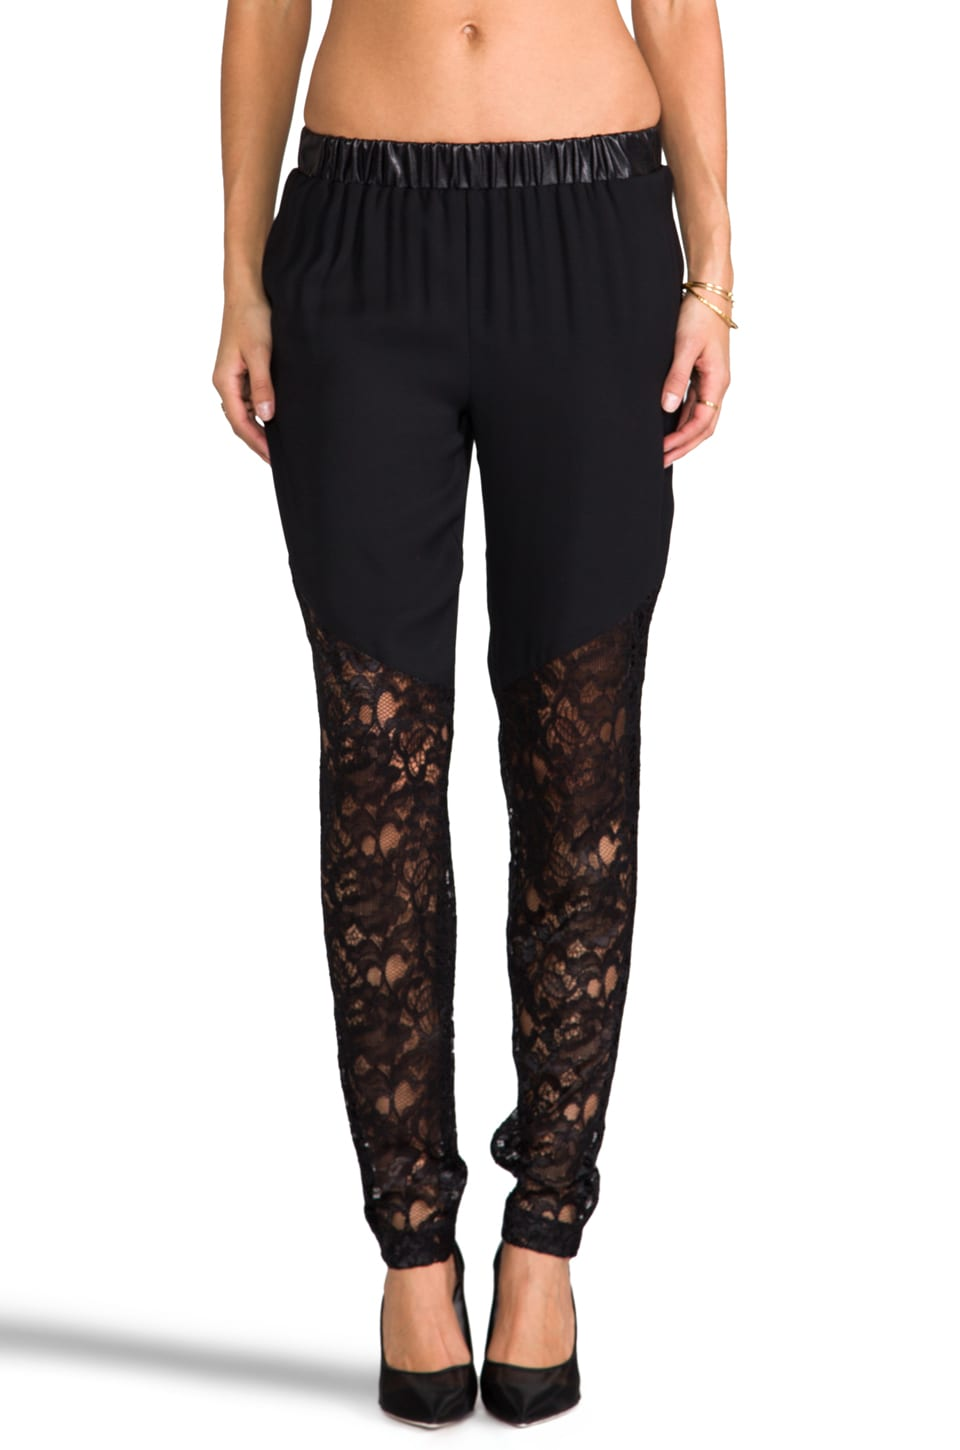 Alexis Edith Pants in Black Lace